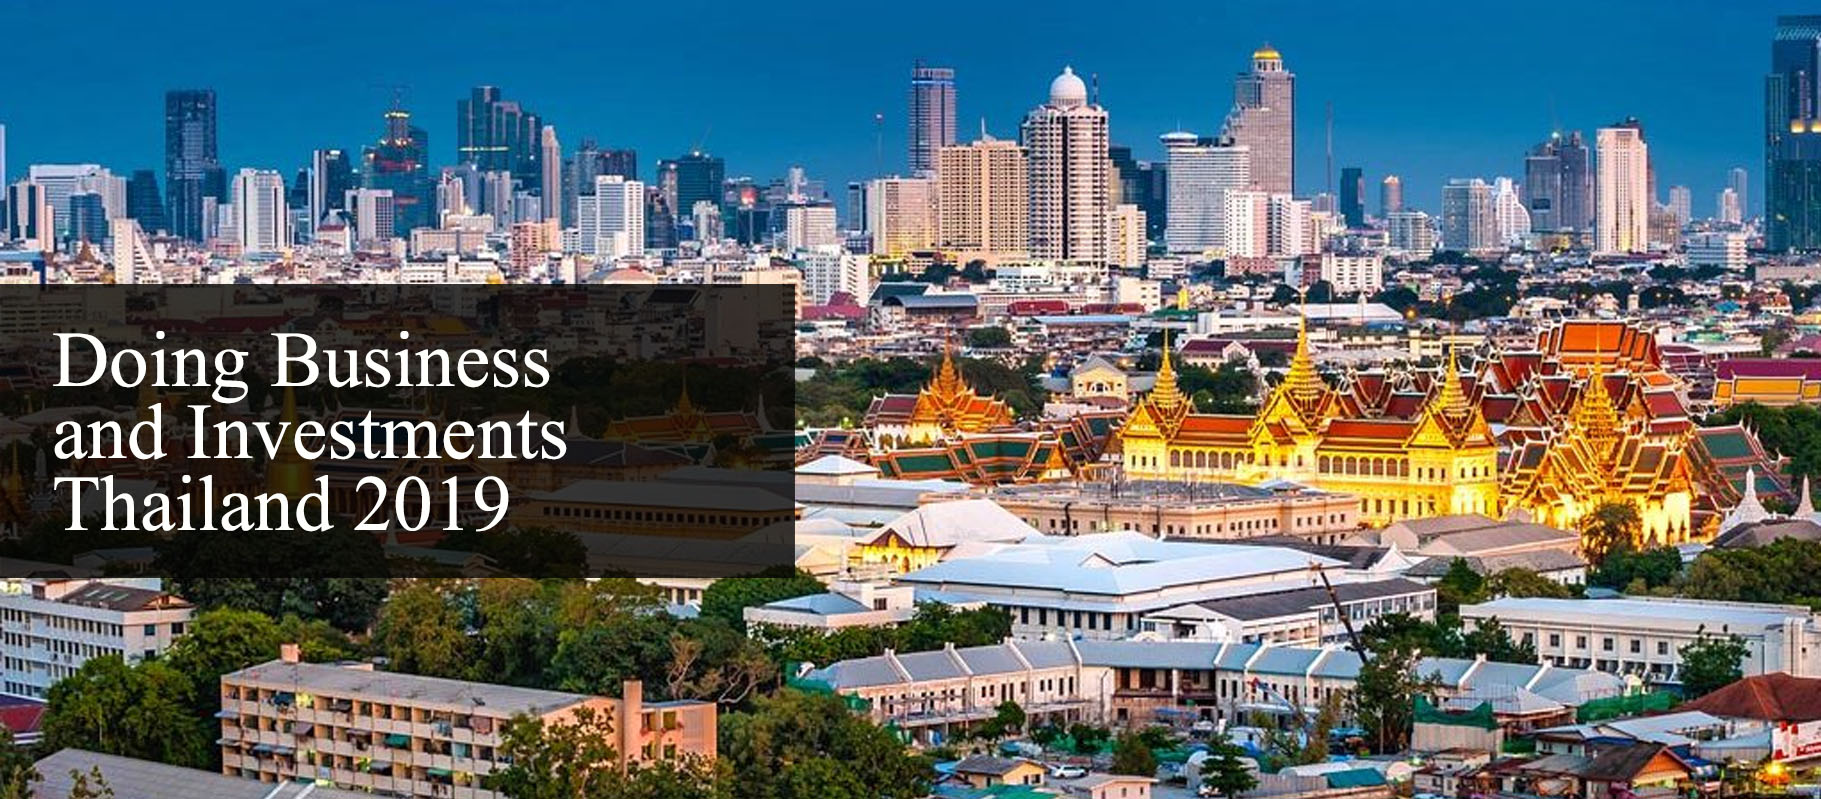 Doing Business and Investments in Thailand 2019